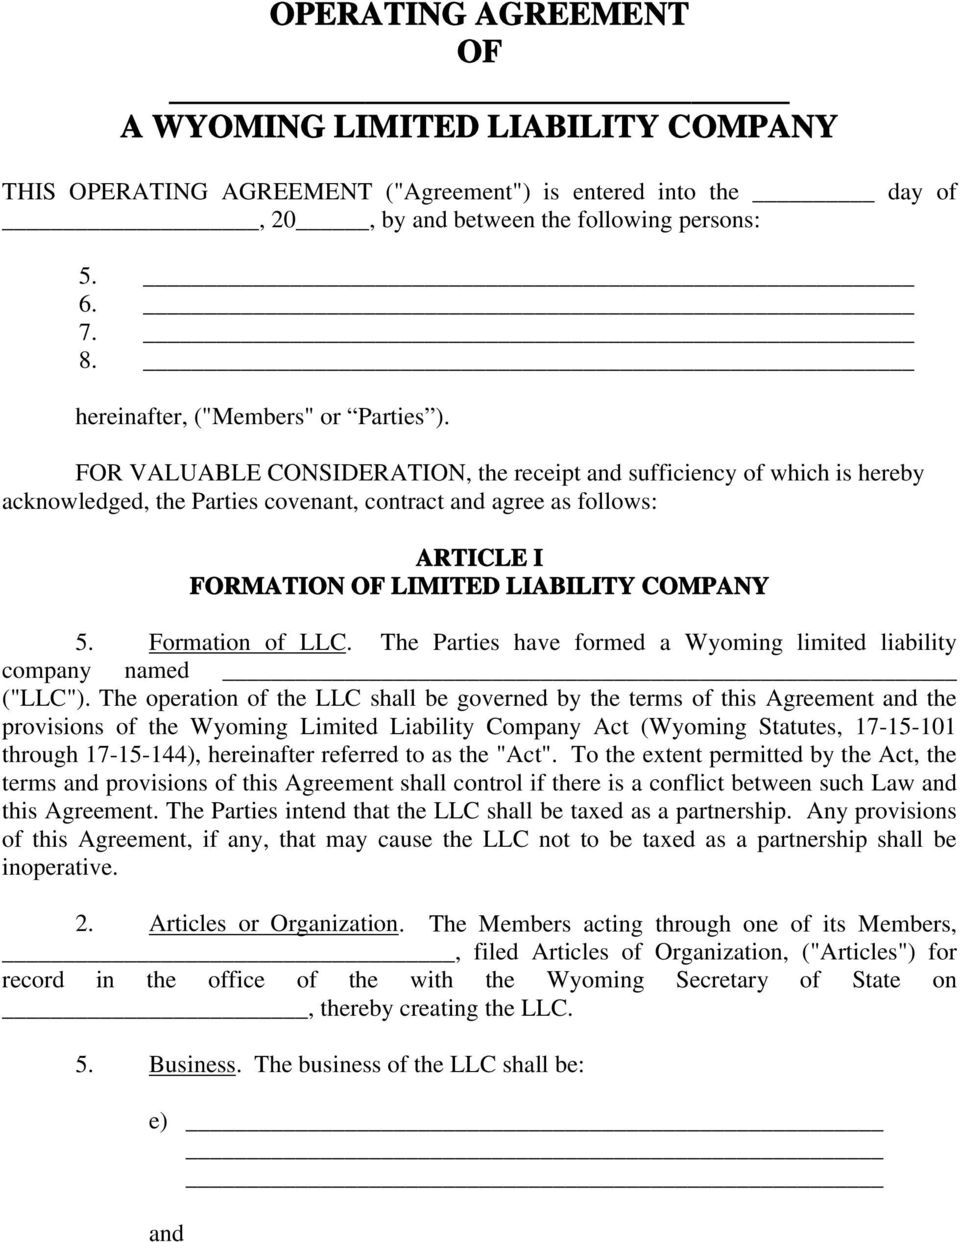 FOR VALUABLE CONSIDERATION, the receipt and sufficiency of which is hereby acknowledged, the Parties covenant, contract and agree as follows: ARTICLE I FORMATION OF LIMITED LIABILITY COMPANY 5.